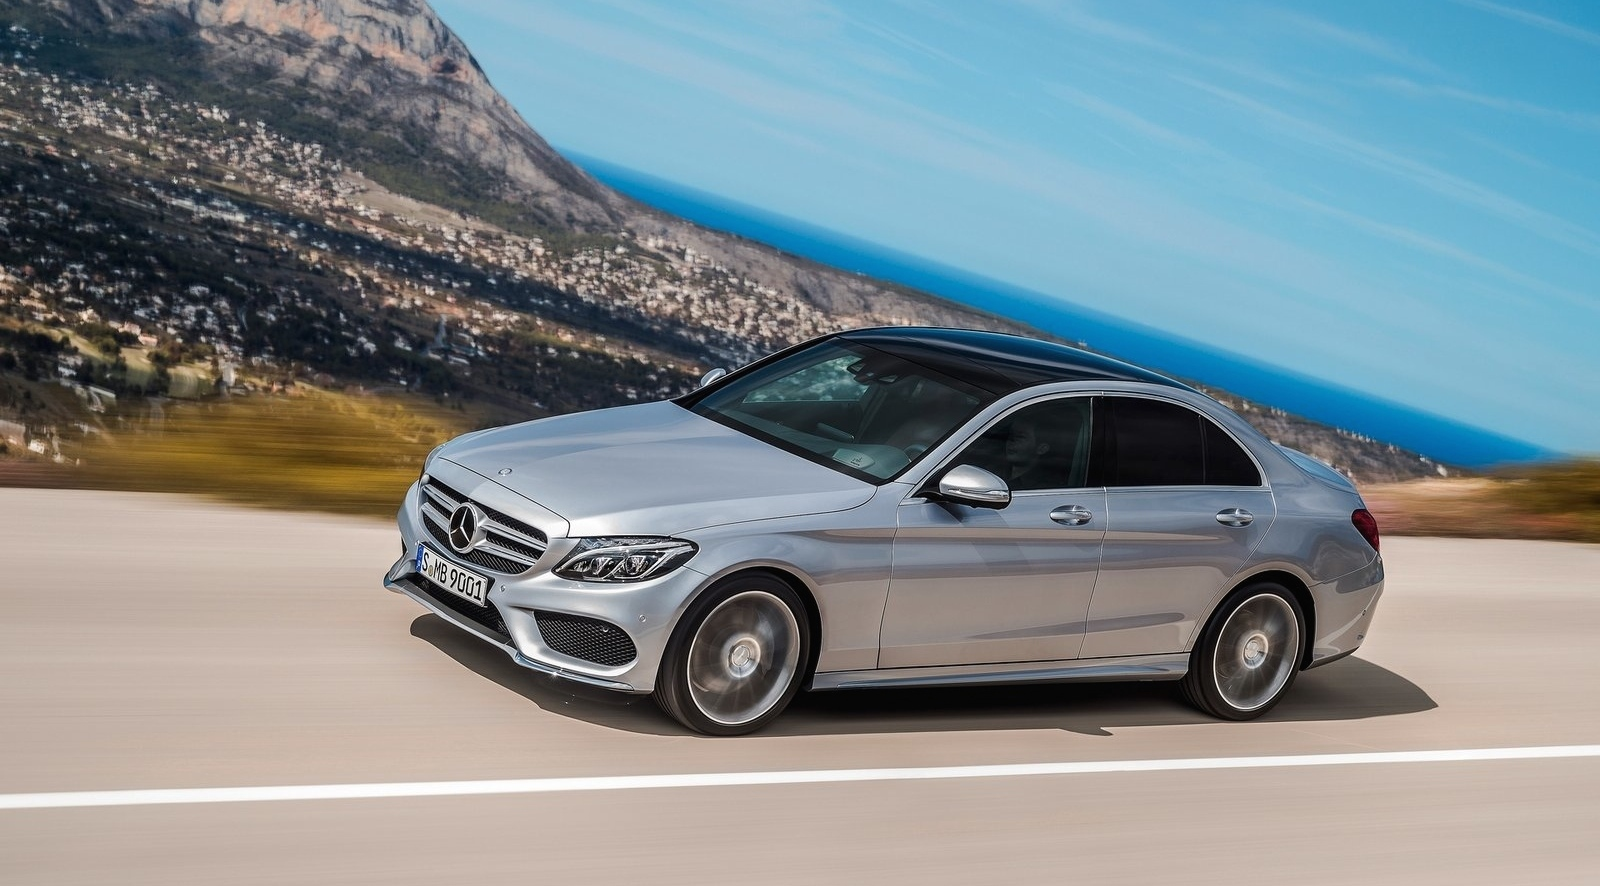 Rappel de la mercedes benz classe c 2015 luxury car magazine for Mercedes benz metairie la